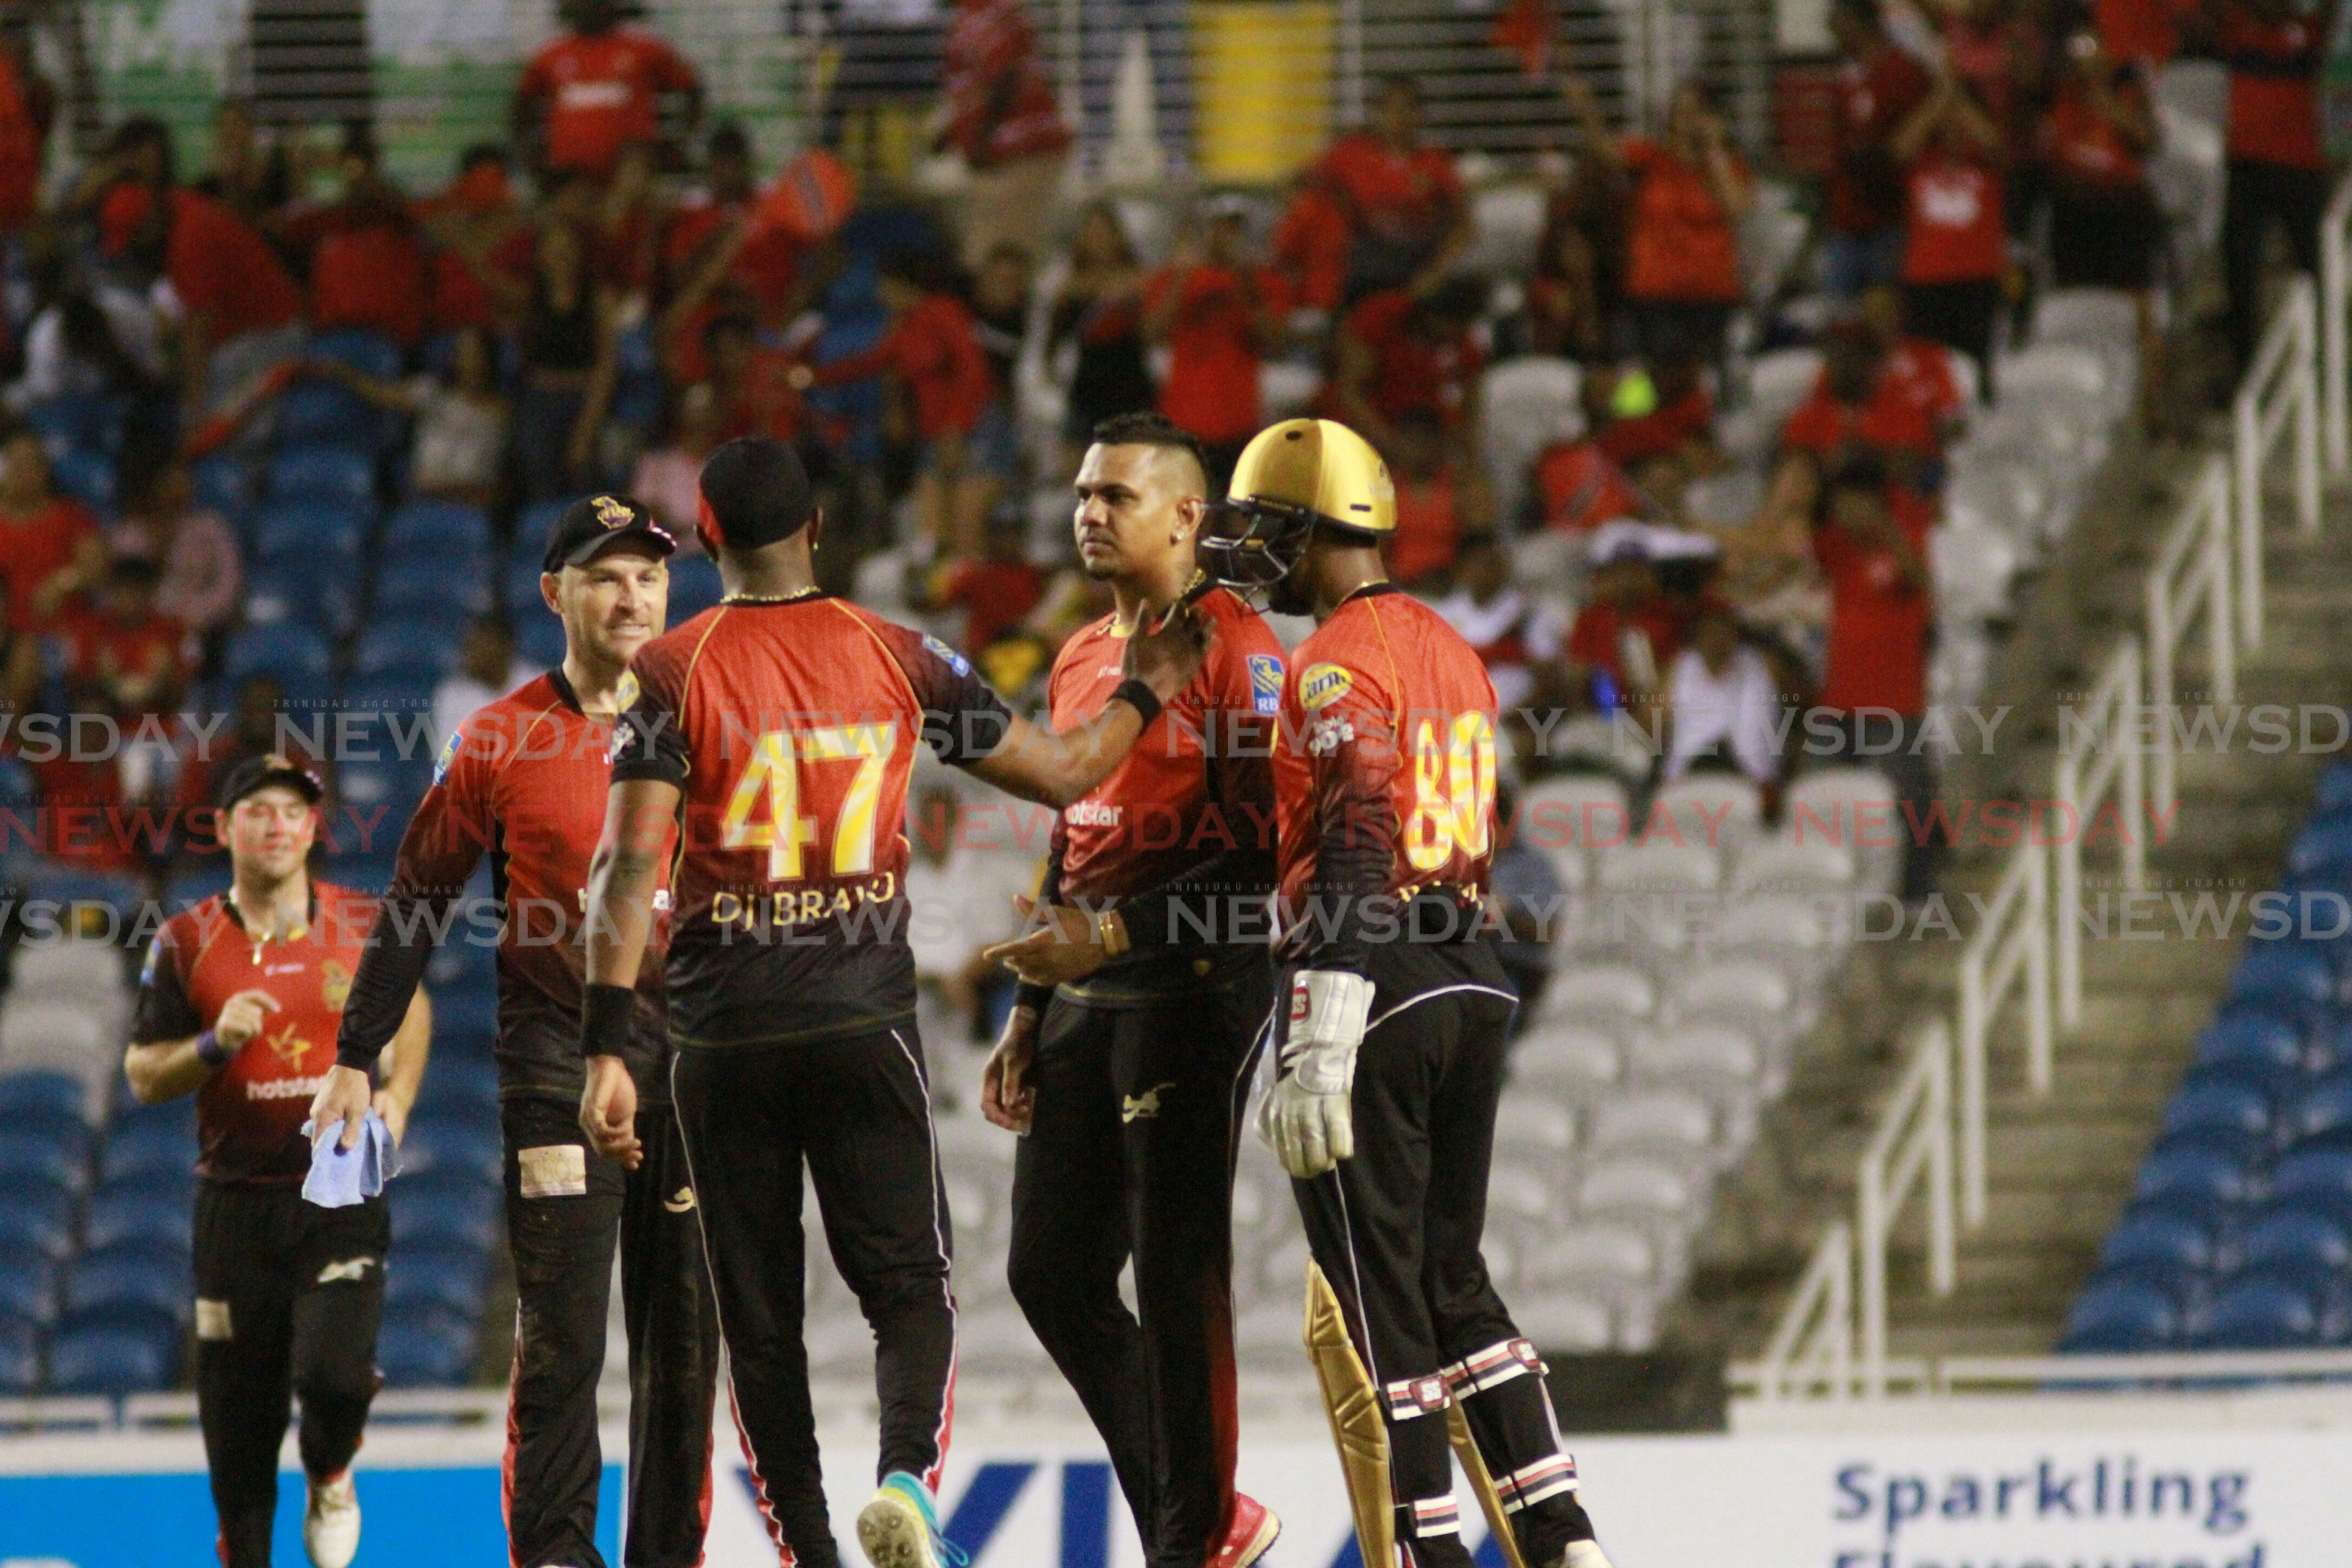 Trinbago Knight Riders celebrate after Sunil Narine (second from right) takes a wicket in the semifinals of the Caribbean Premiere League. Photo by Anil Rampersad